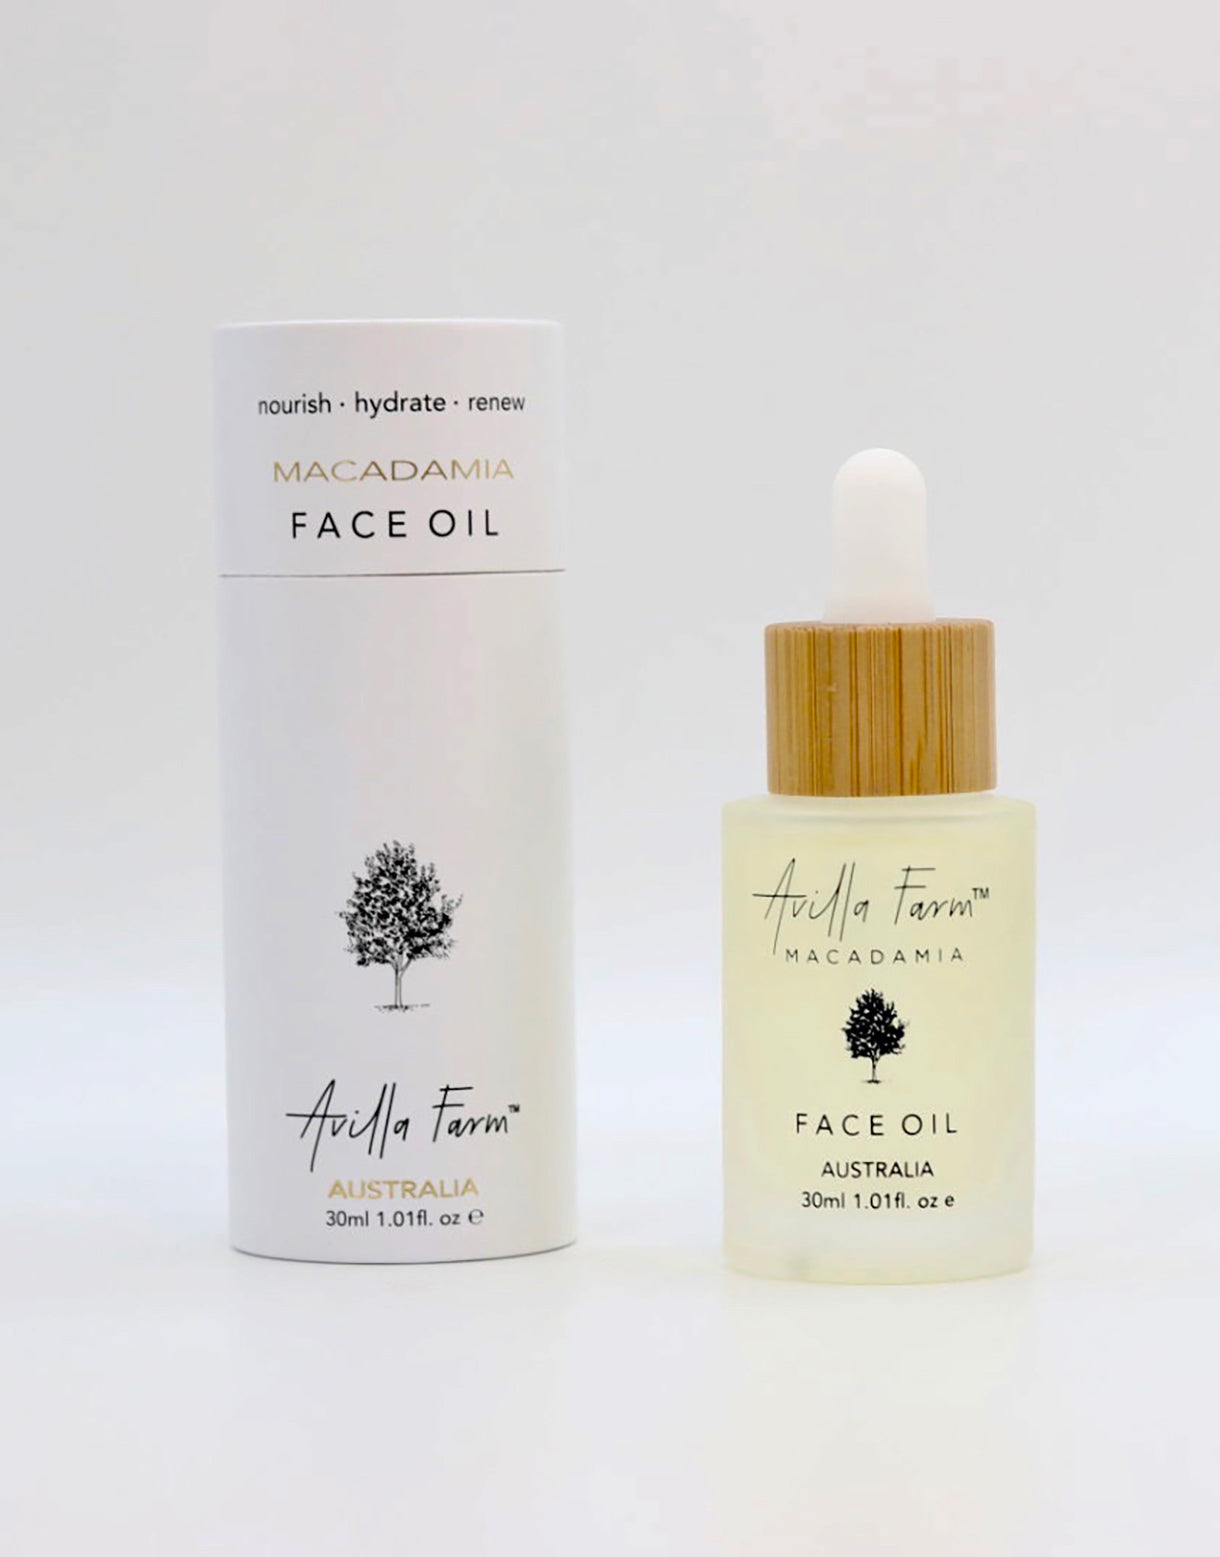 Macadamia Face Oil